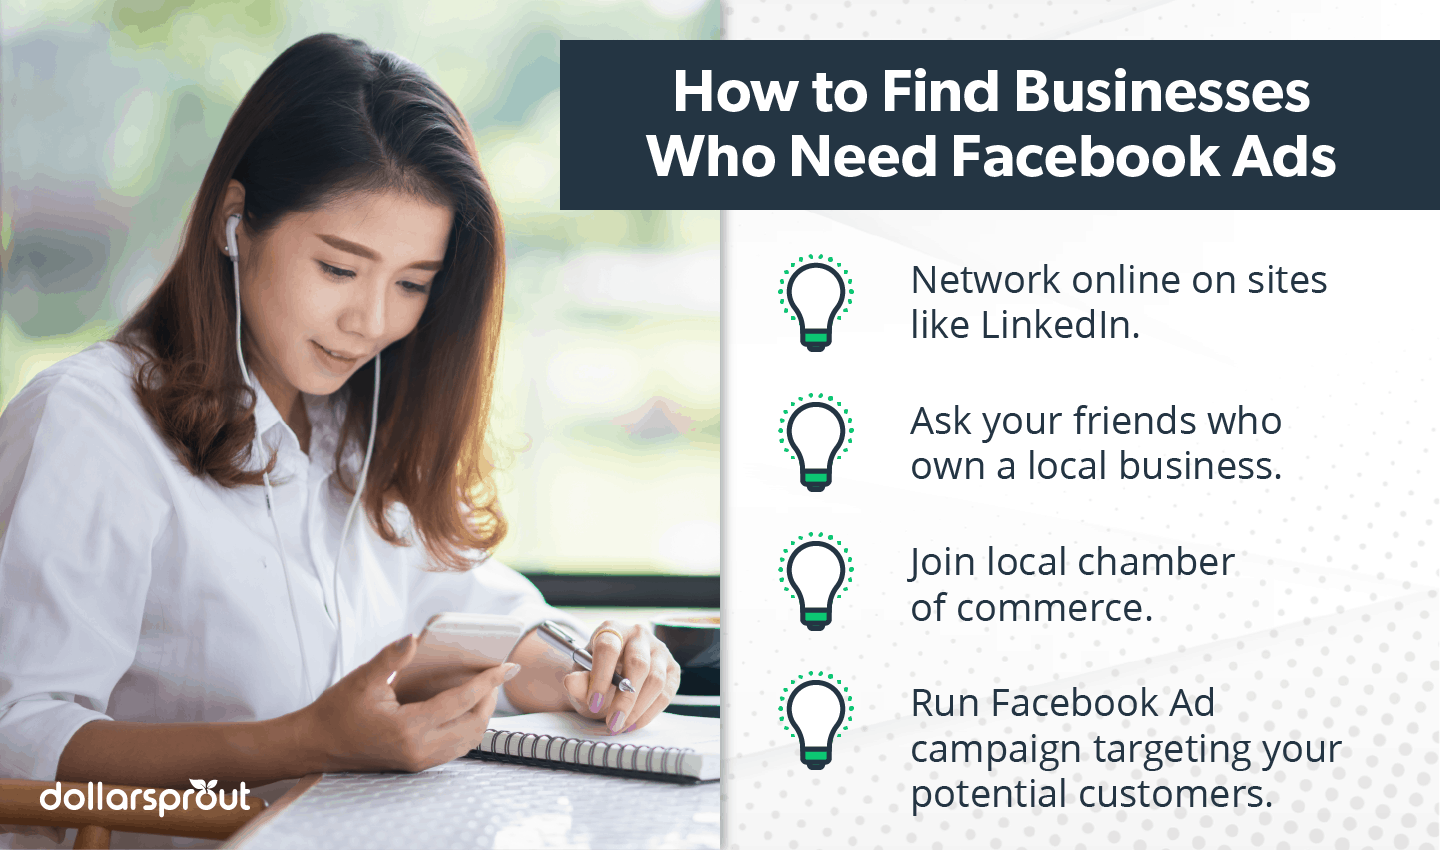 Find businesses who need Facebook ads